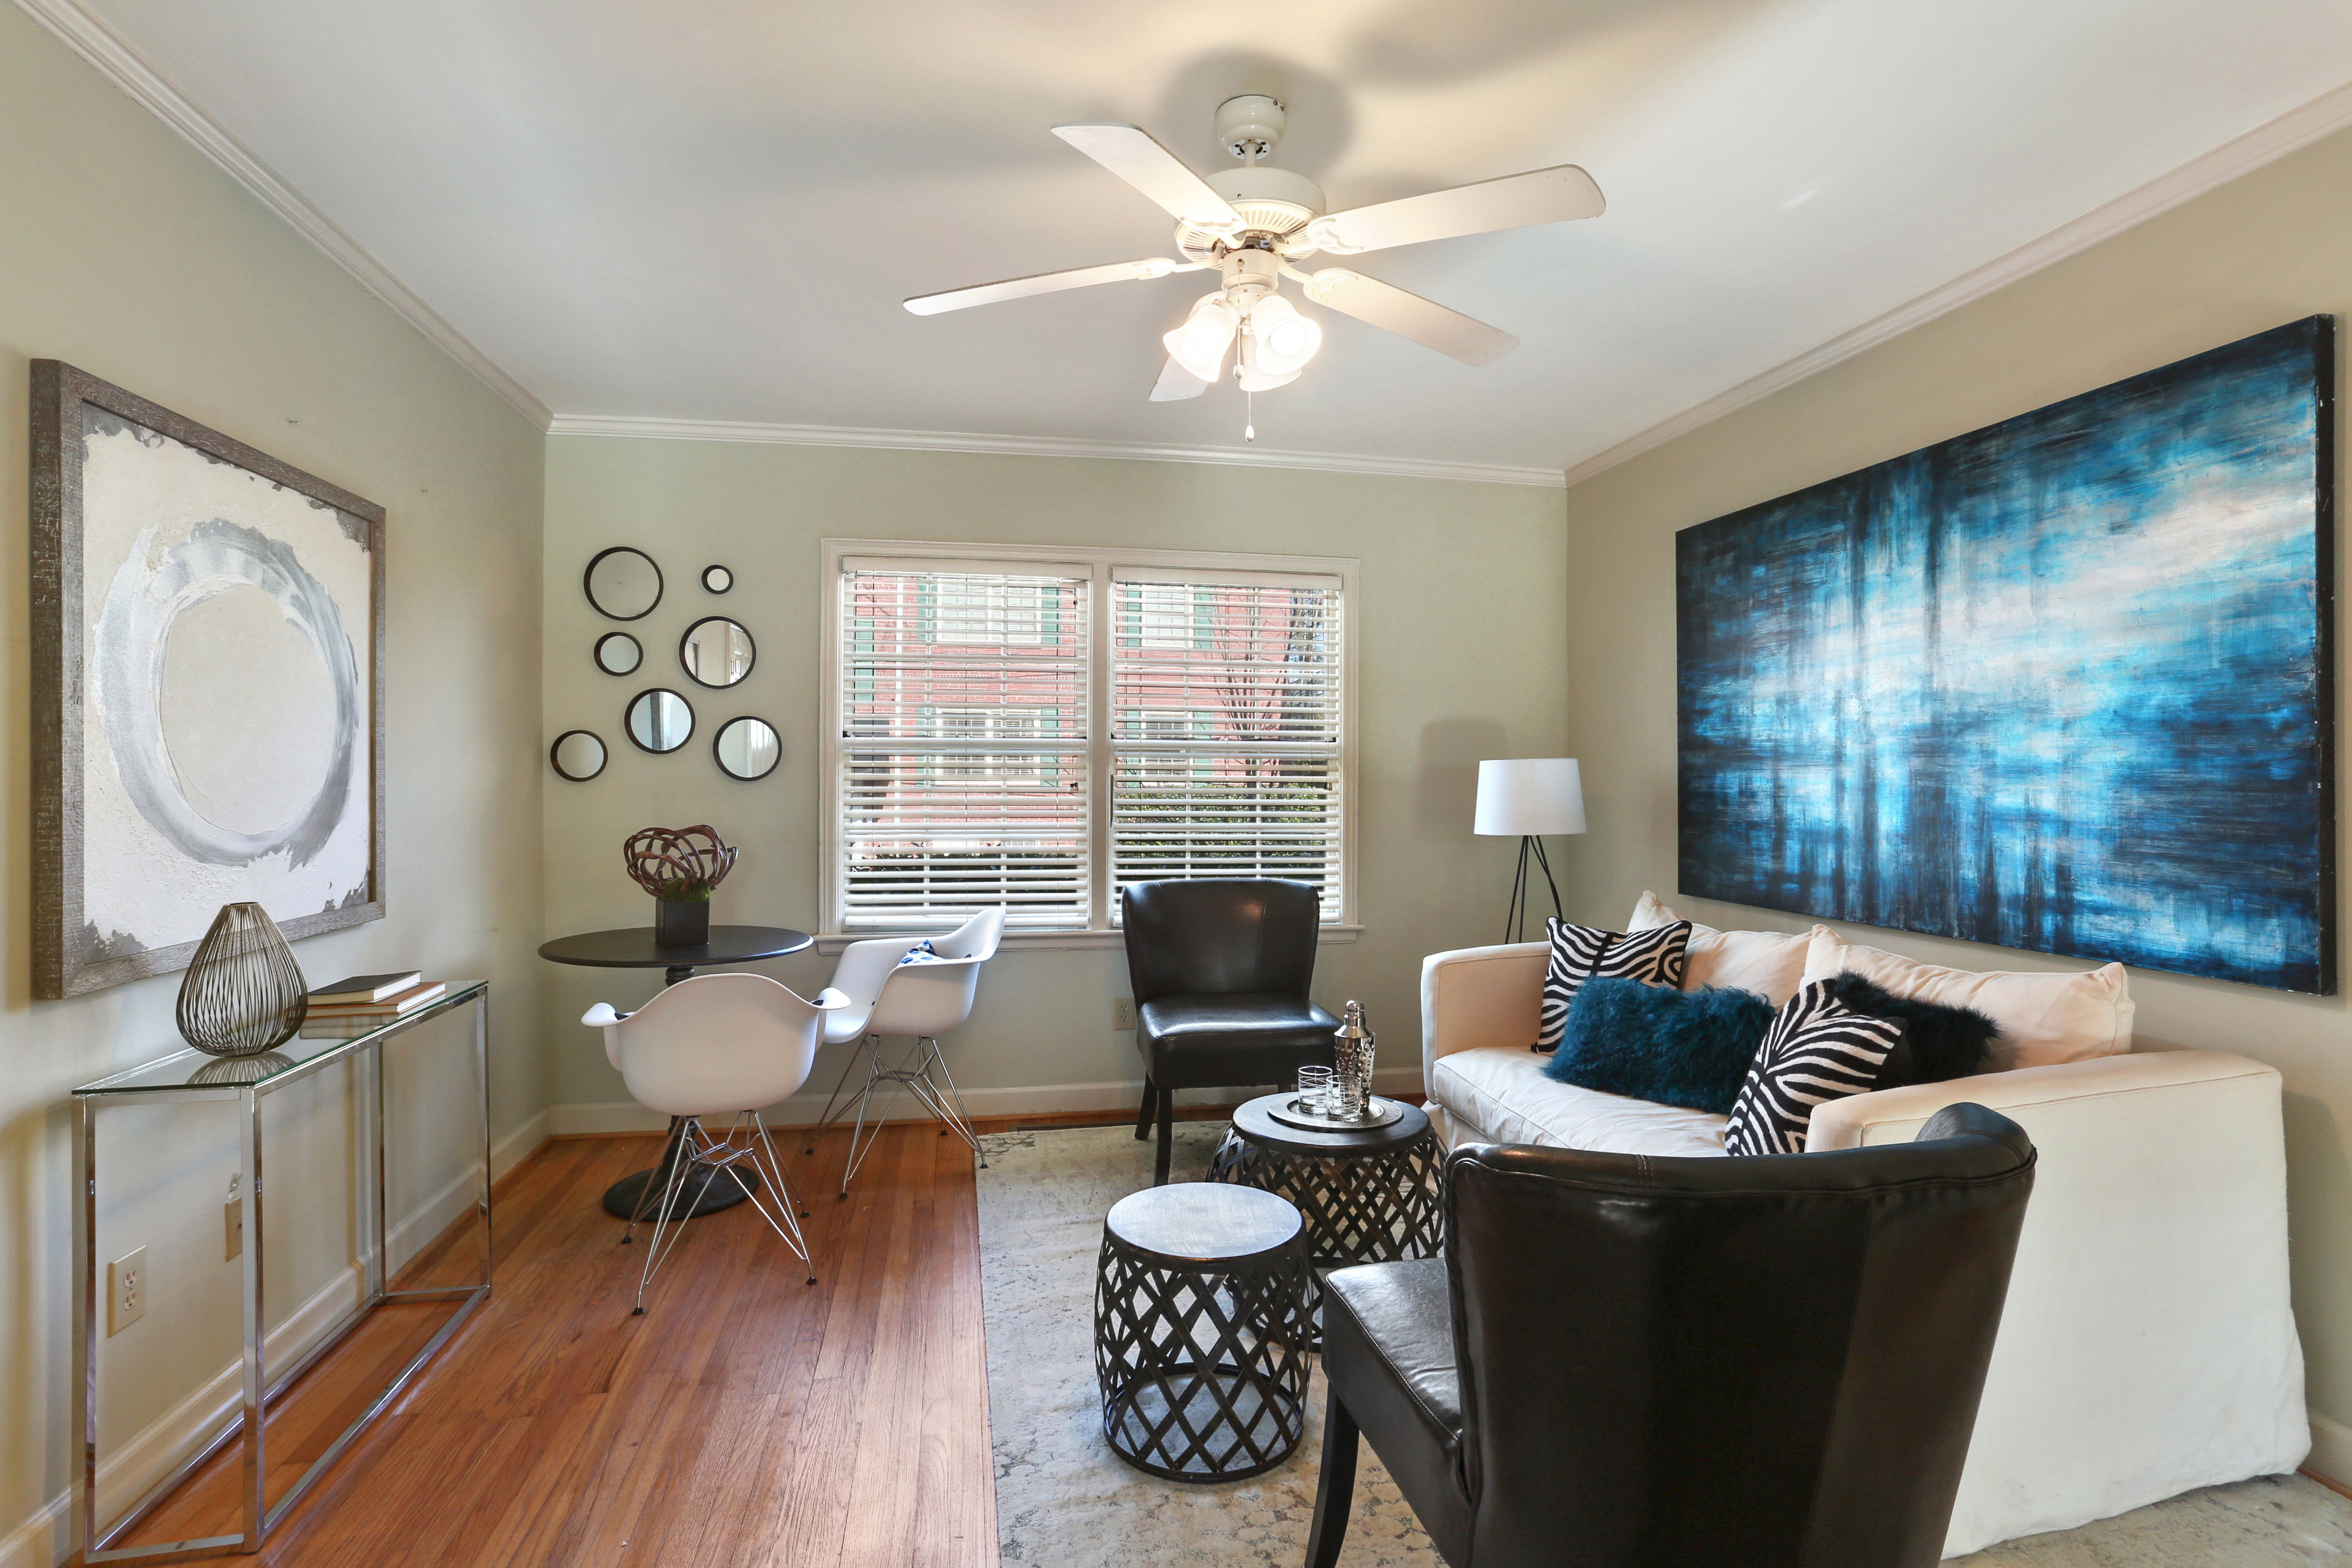 Property For Sale at Adorable Condo in Prime Candler Park Location